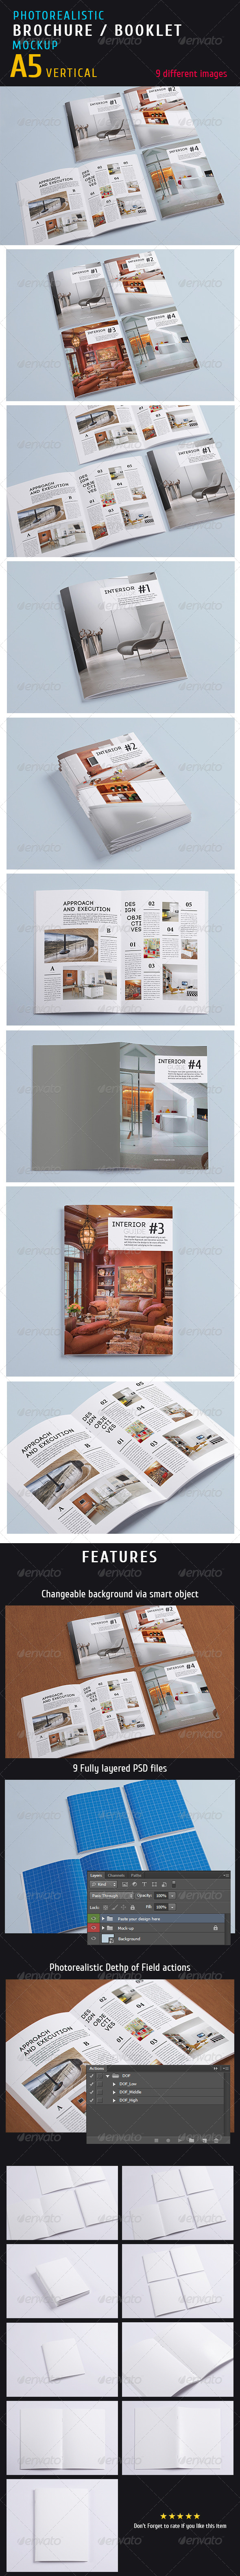 GraphicRiver Photorealistic a5 Magazine Mock-up 5301302